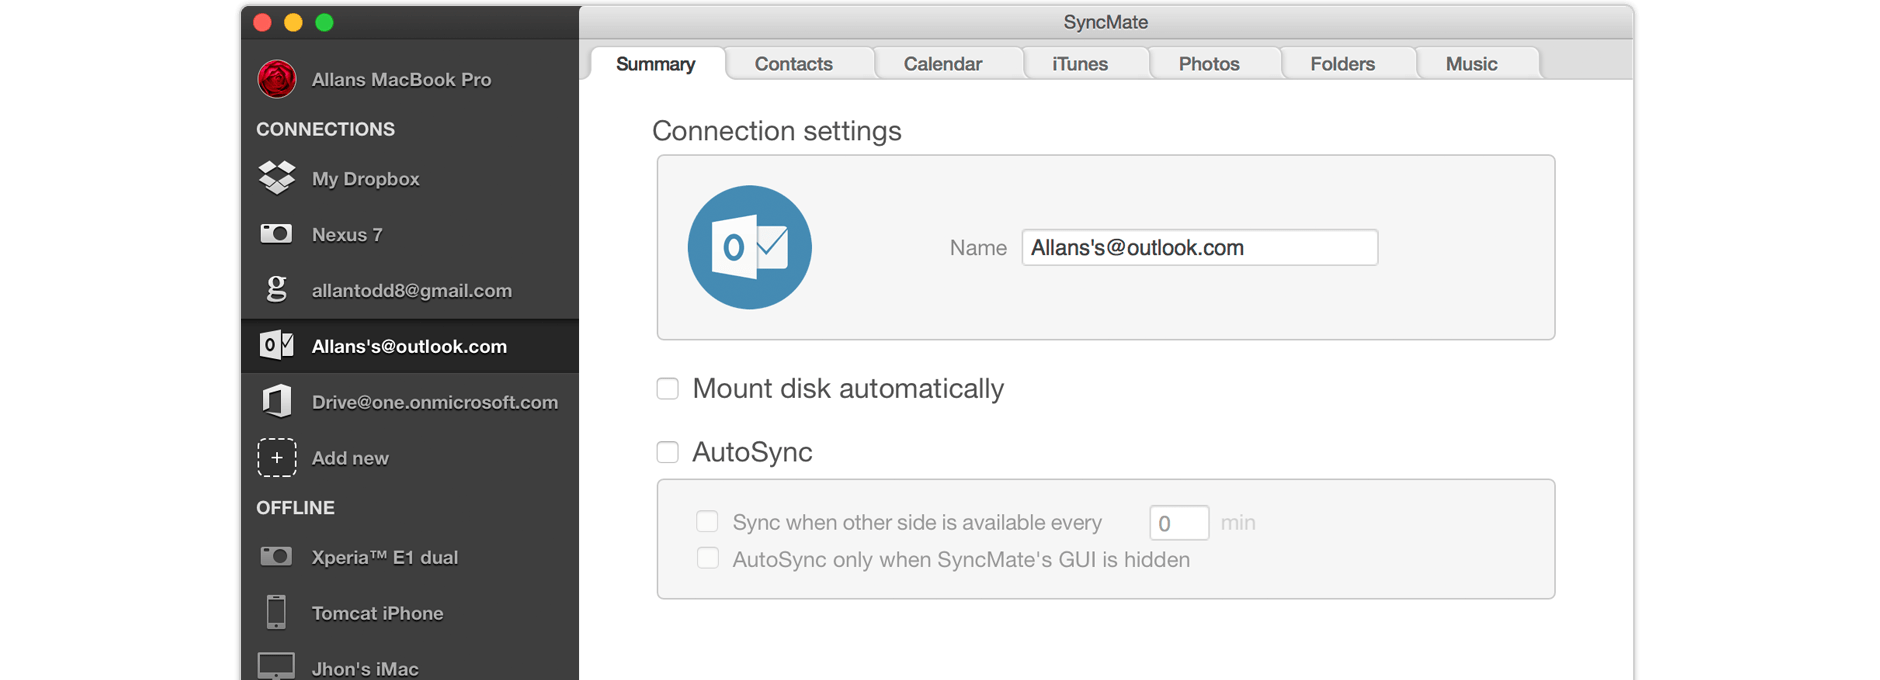 Outlook sync Mac: sync Mac and Outlook for free with SyncMate